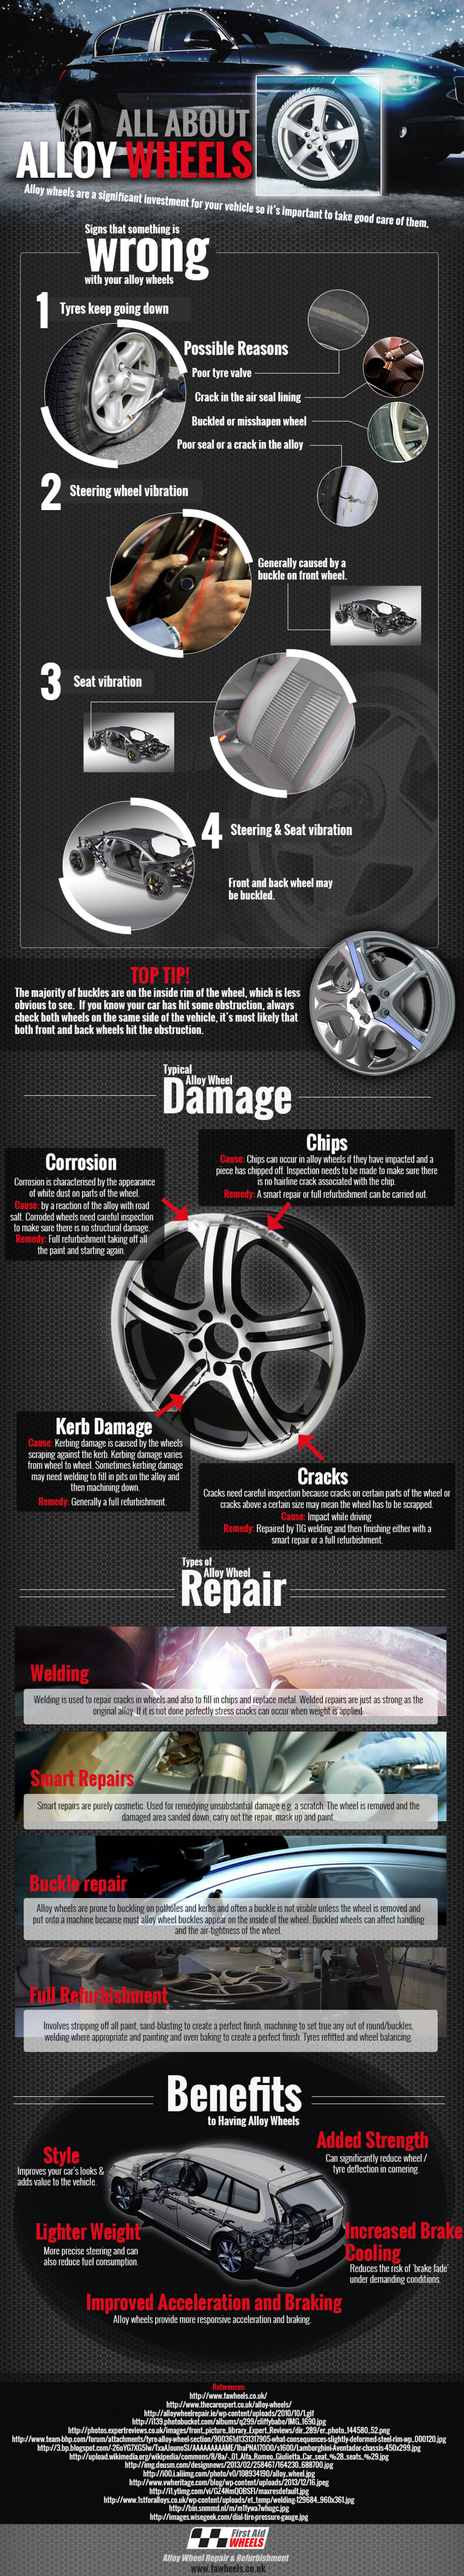 All About Alloy Wheels Infographic